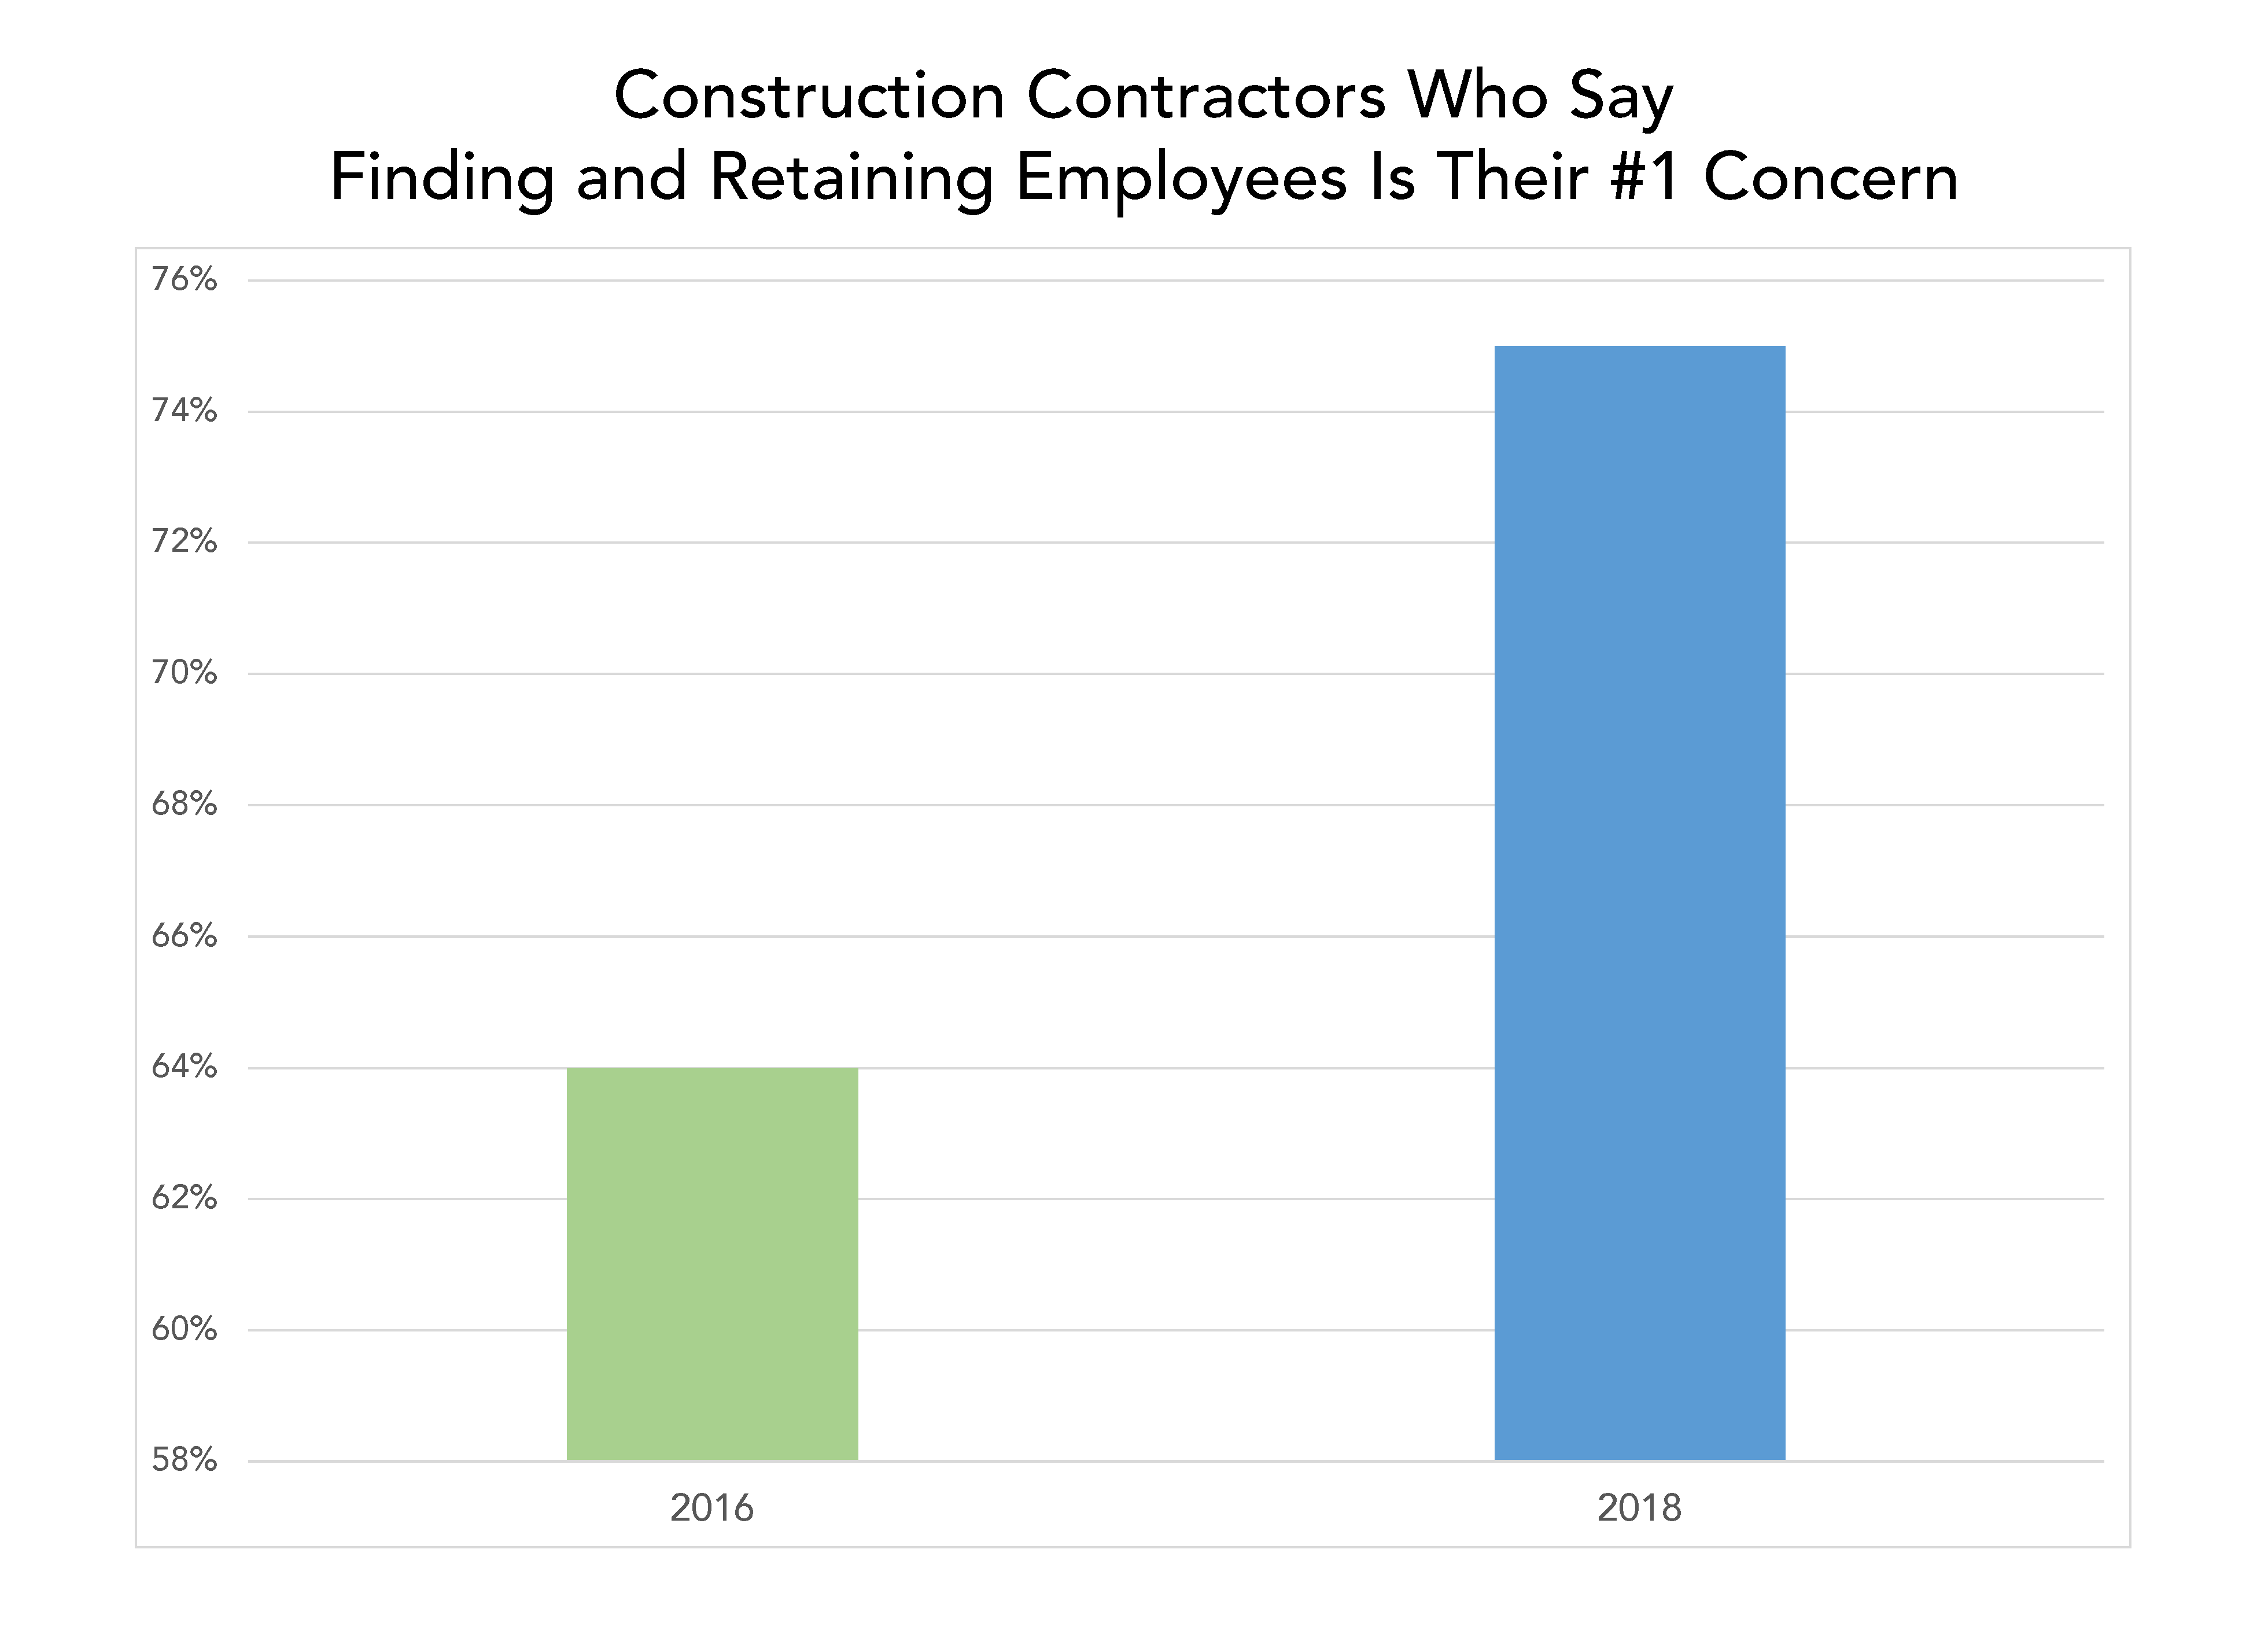 employee retention is top concern for construction contractors